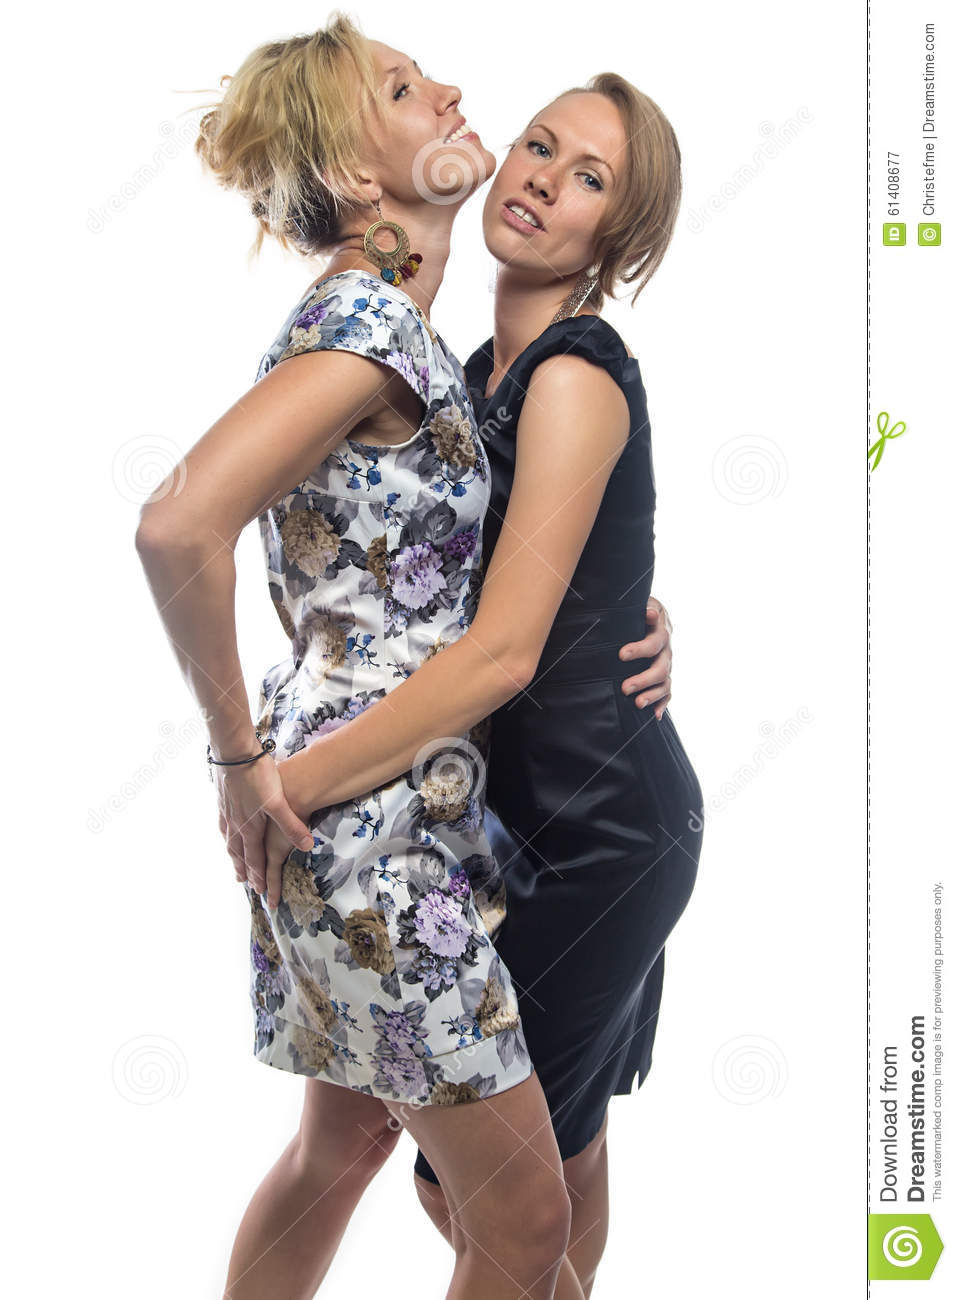 Download Isolated Portrait Of Standing Sisters On White Stock Image - Image of isolated, lesbians: 61408677